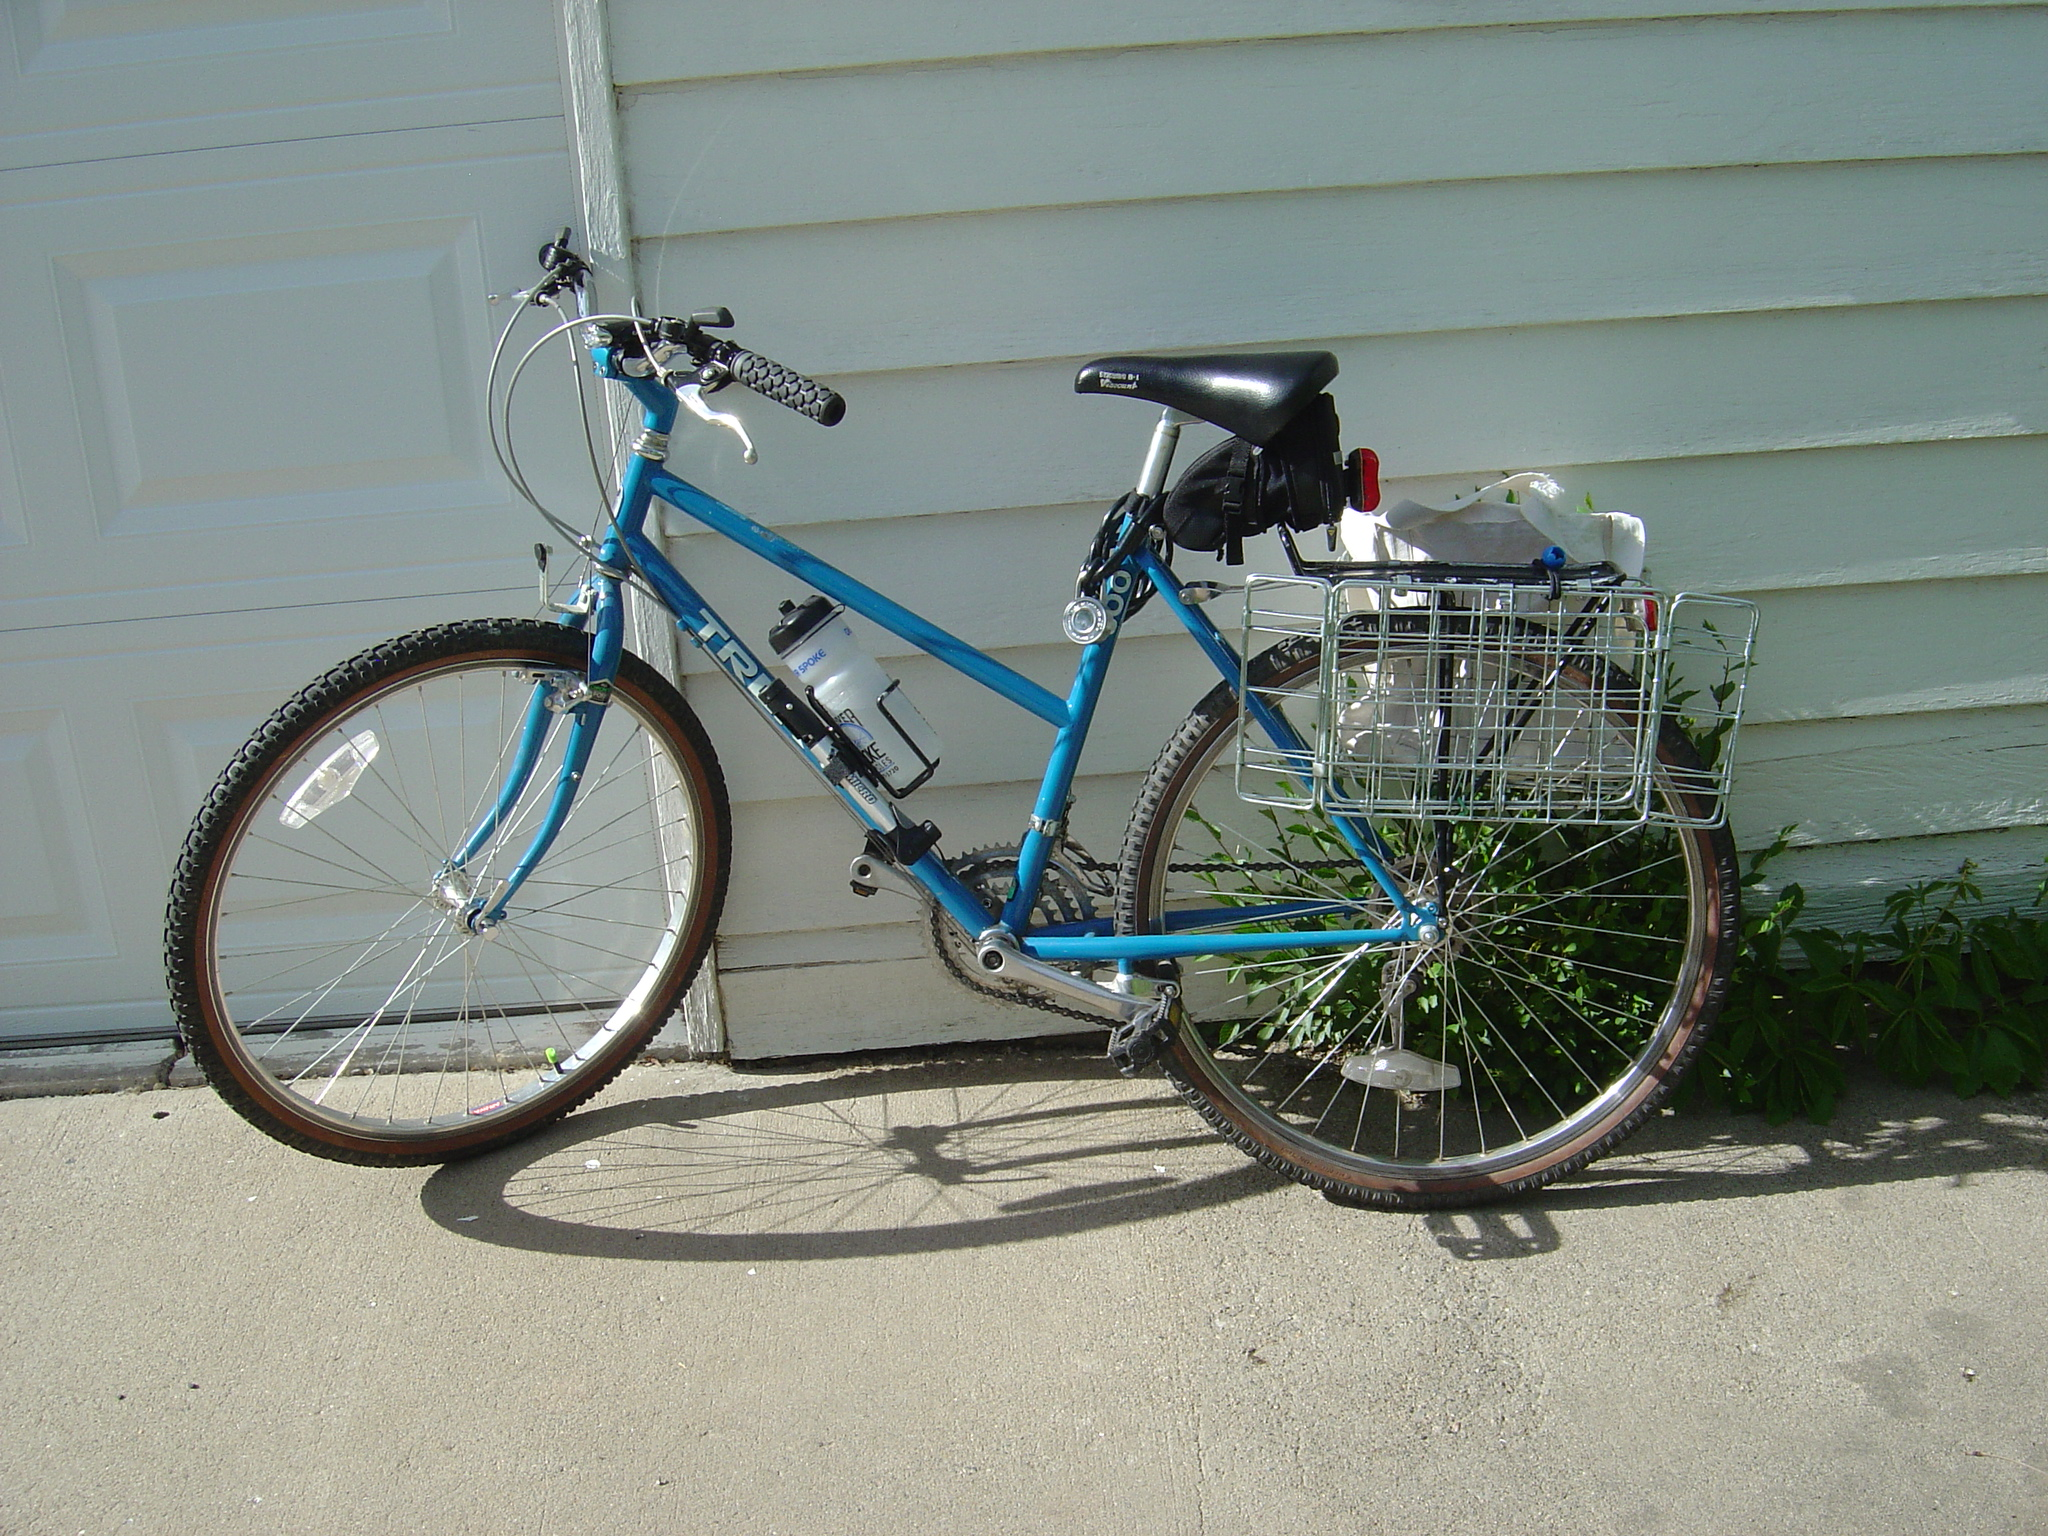 Bikes With Baskets In The Back with rear bike baskets